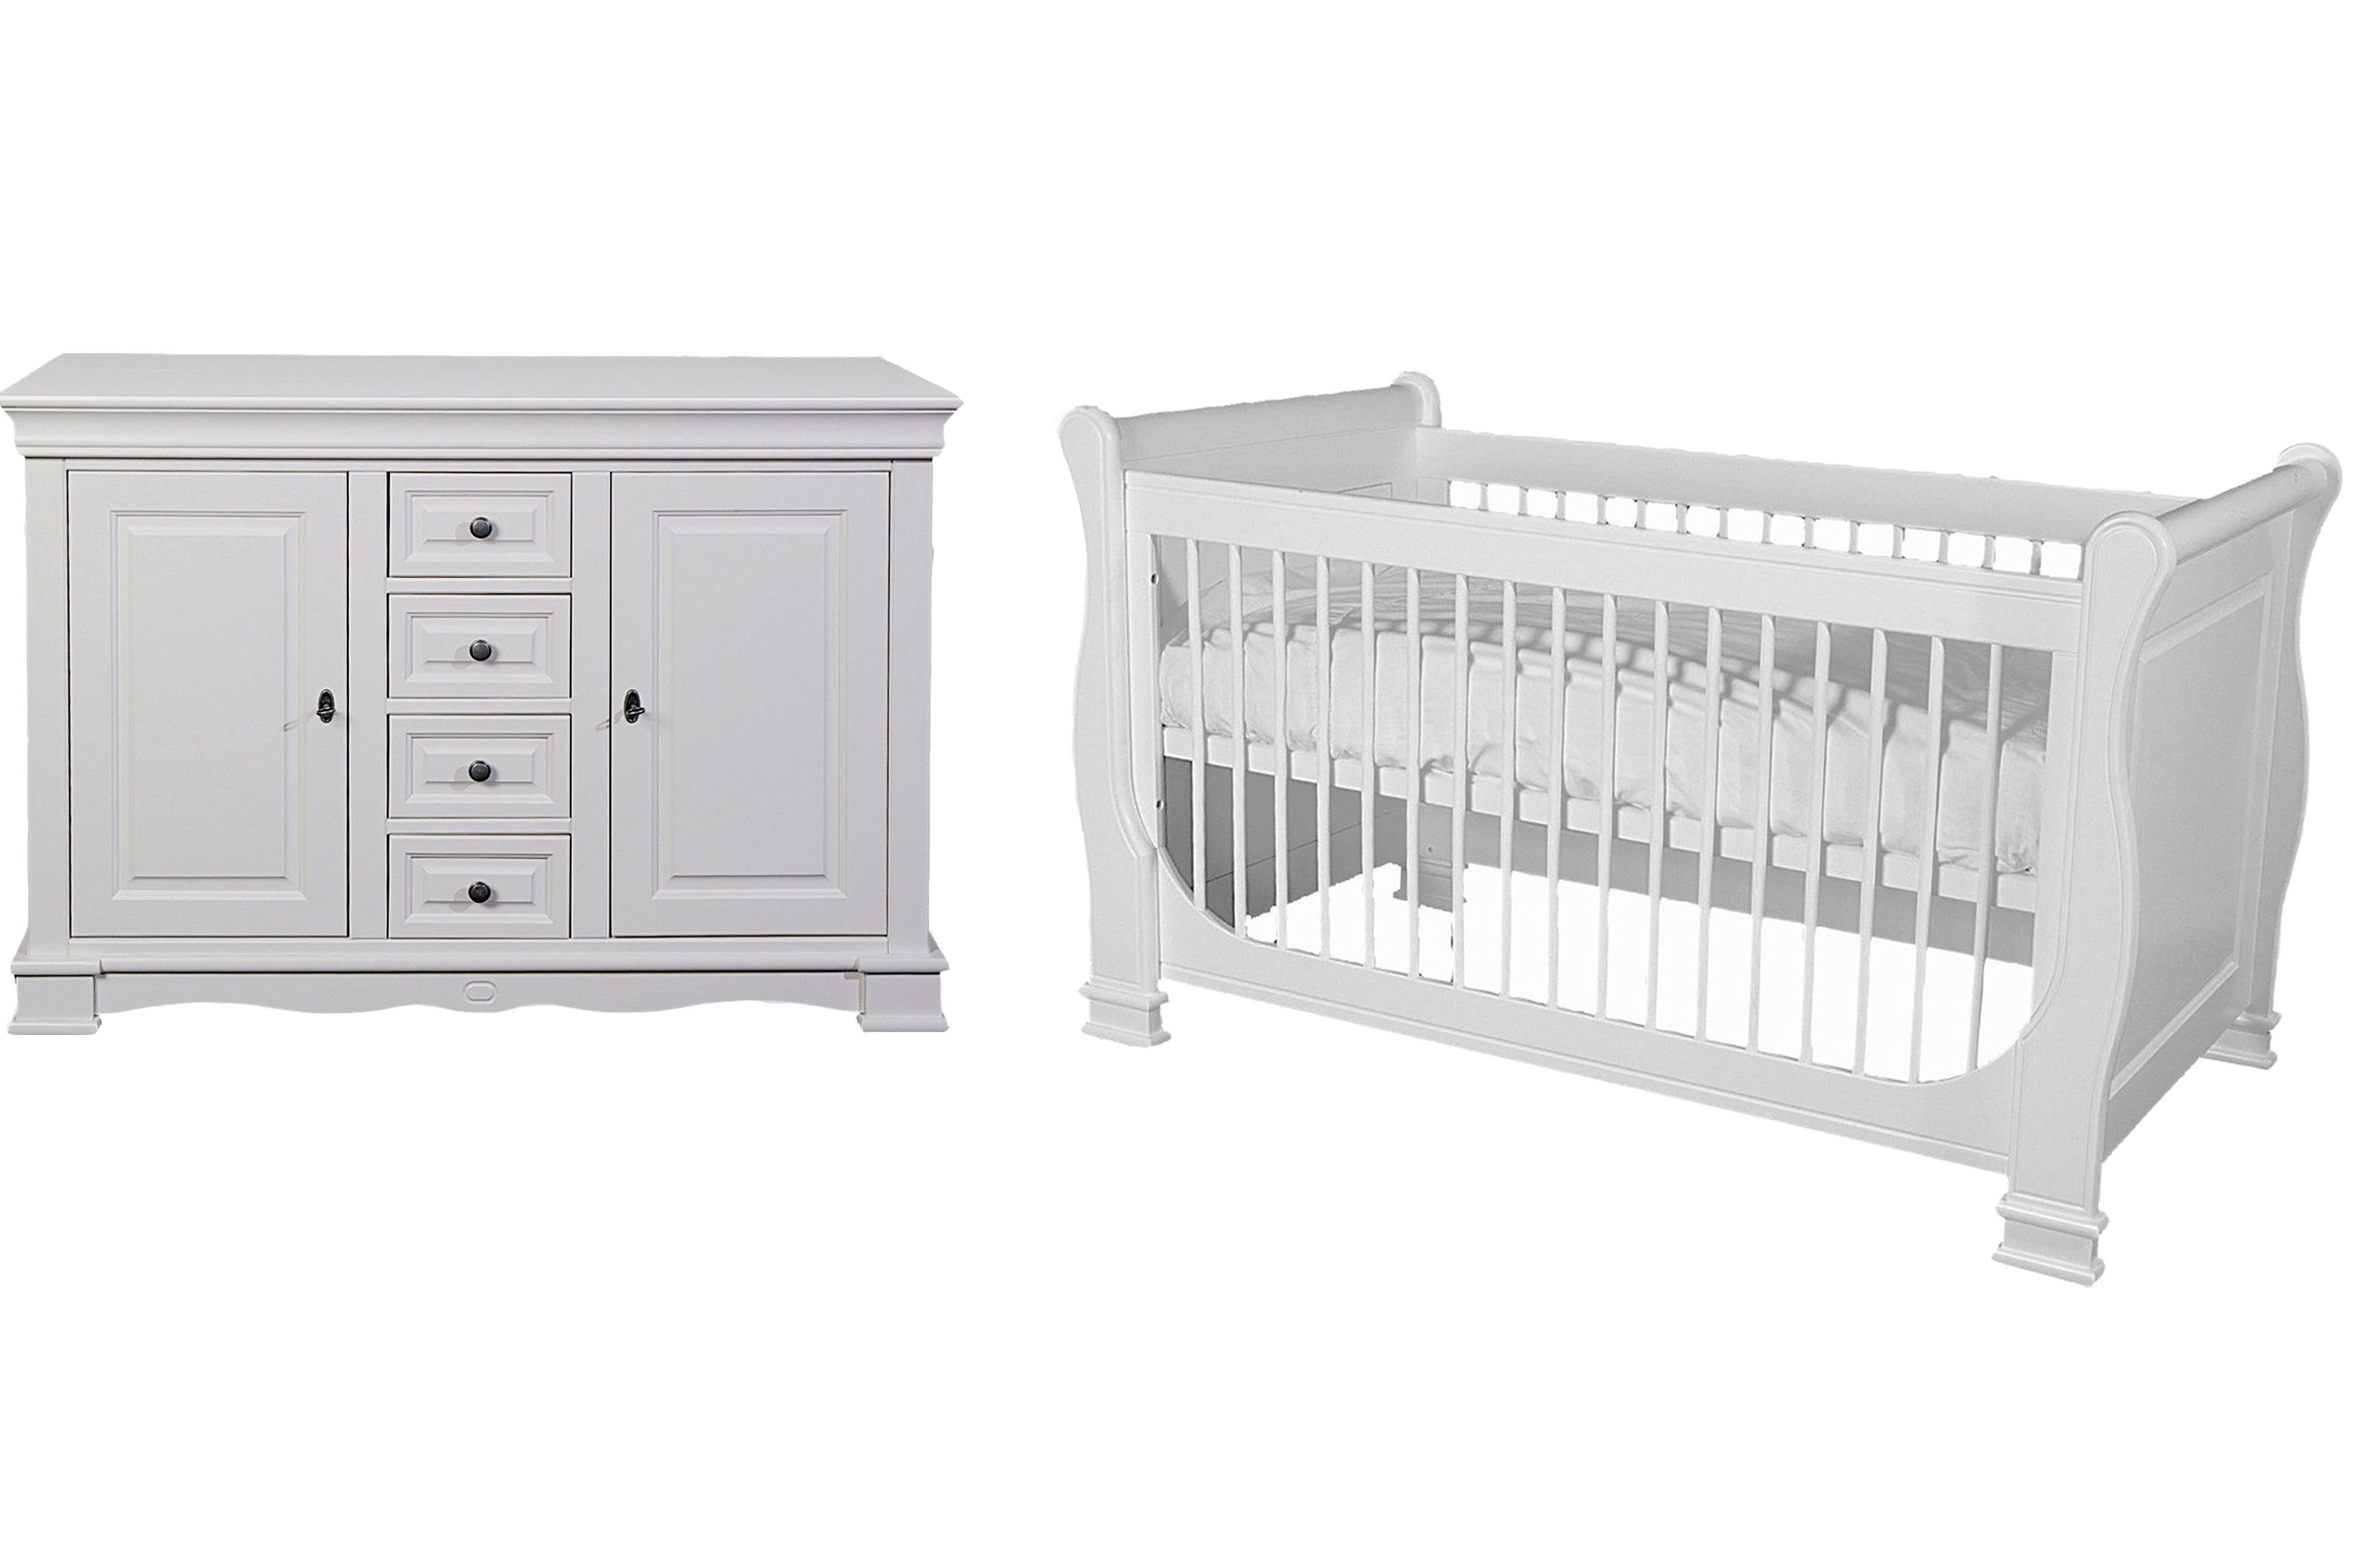 Kidsmill Louise de Philippe 2 Piece Nursery Furniture Set